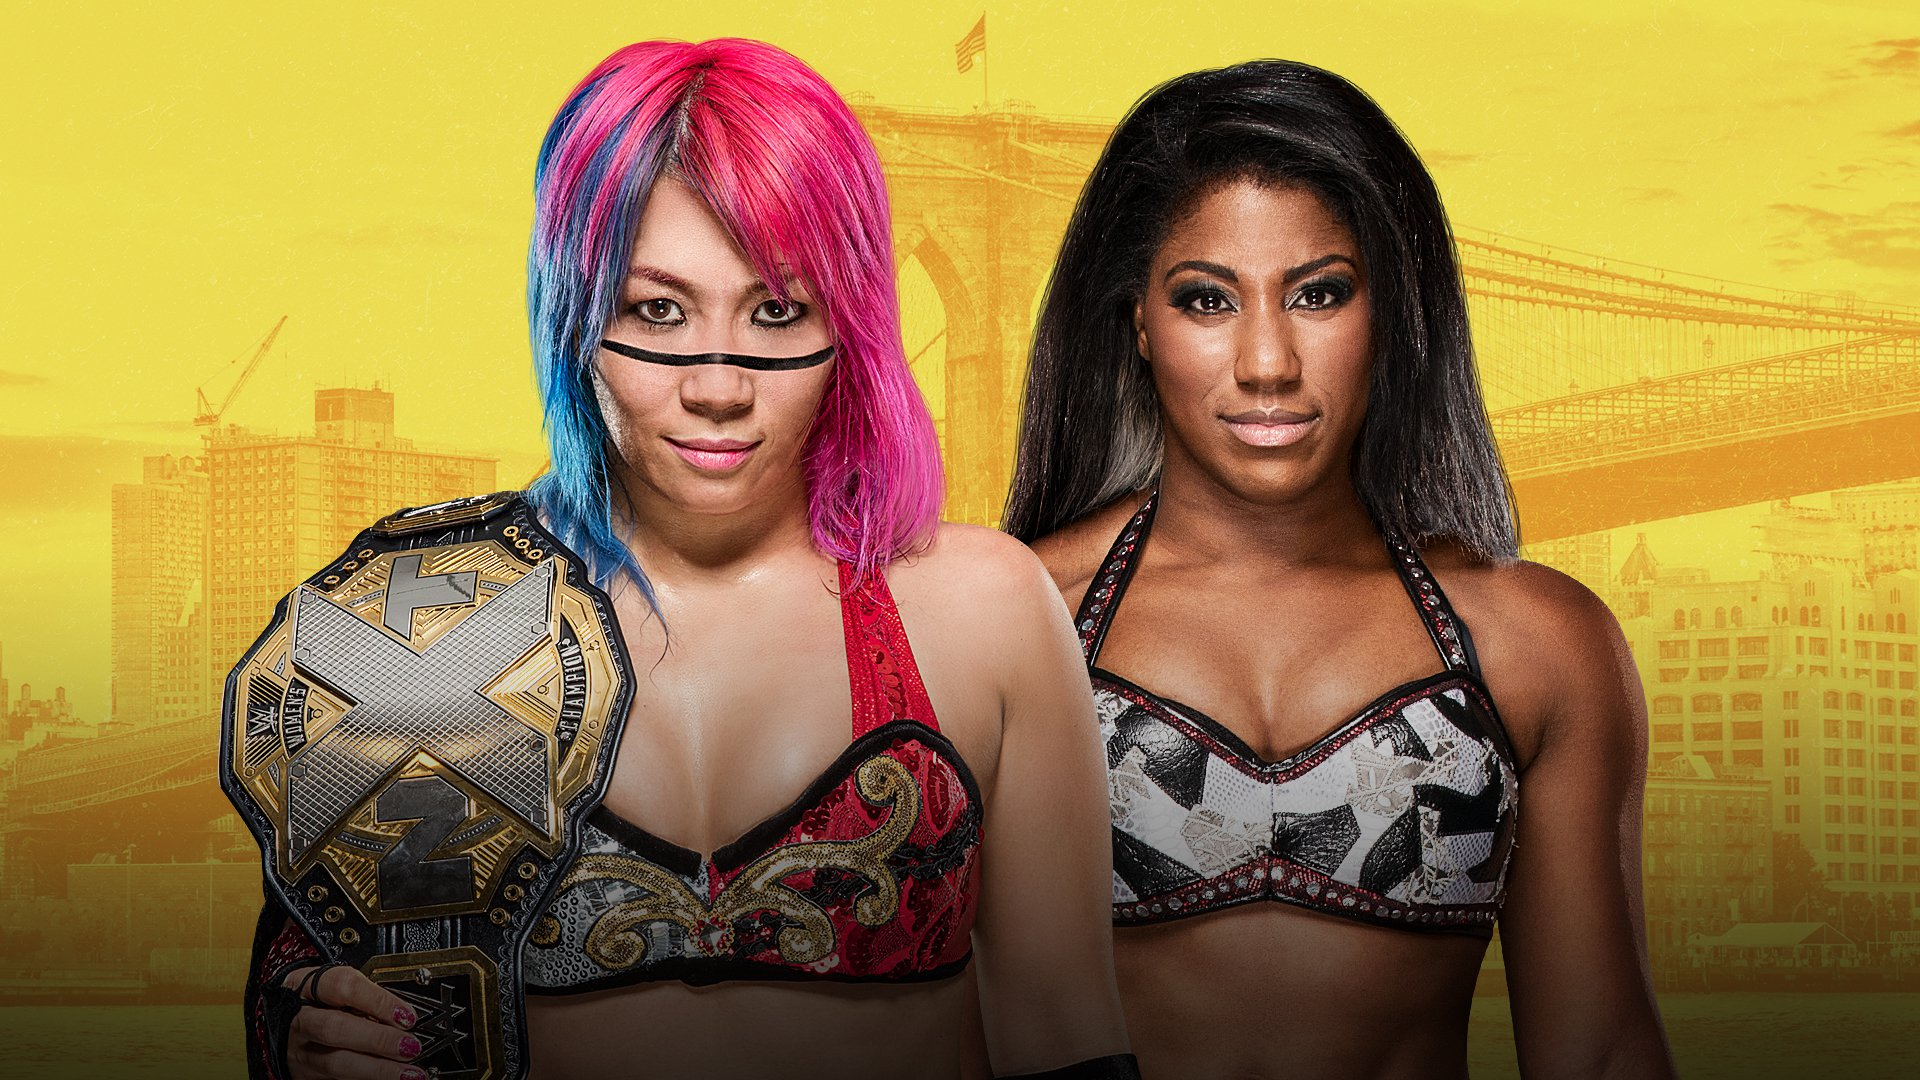 NXT TakeOver - Brooklyn III: Asuka vs. Ember Moon